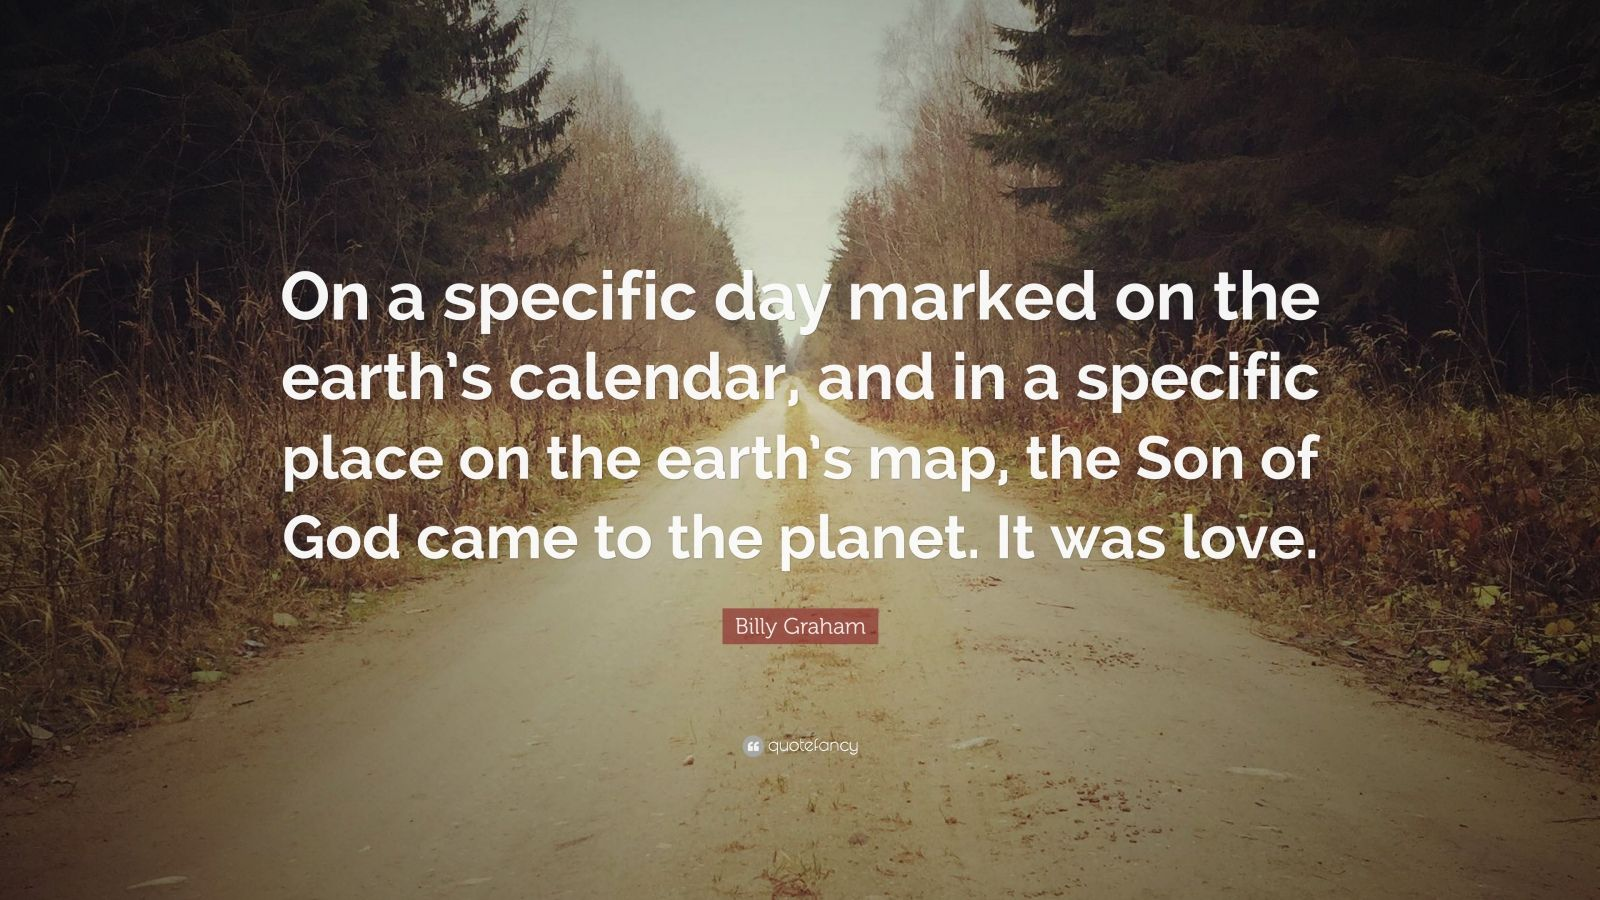 """Billy Graham Quote: """"On a specific day marked on the earth's calendar, and in a specific place on the earth's map, the Son of God came to the planet. It was love."""""""